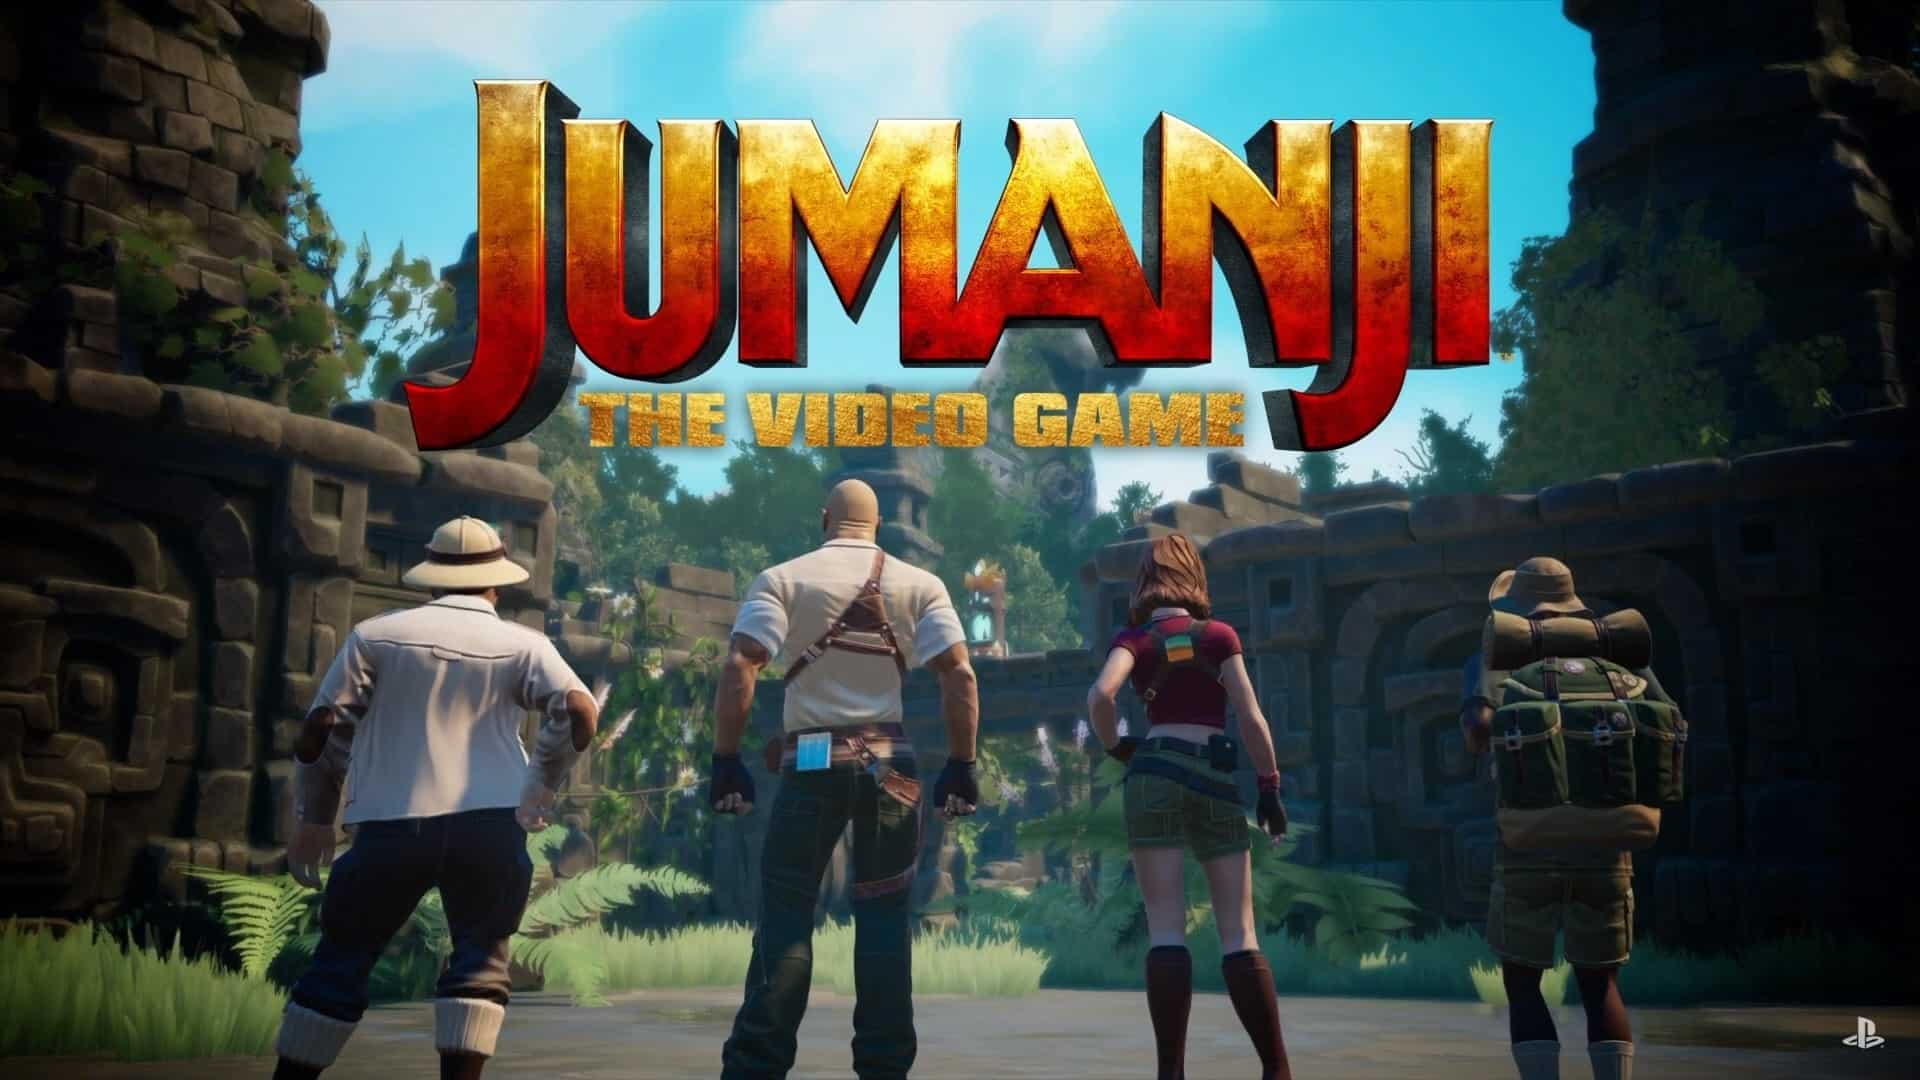 Jumanji: The Video Game Releases Today On PS4, Nintendo Switch, Xbox One & PC Digital